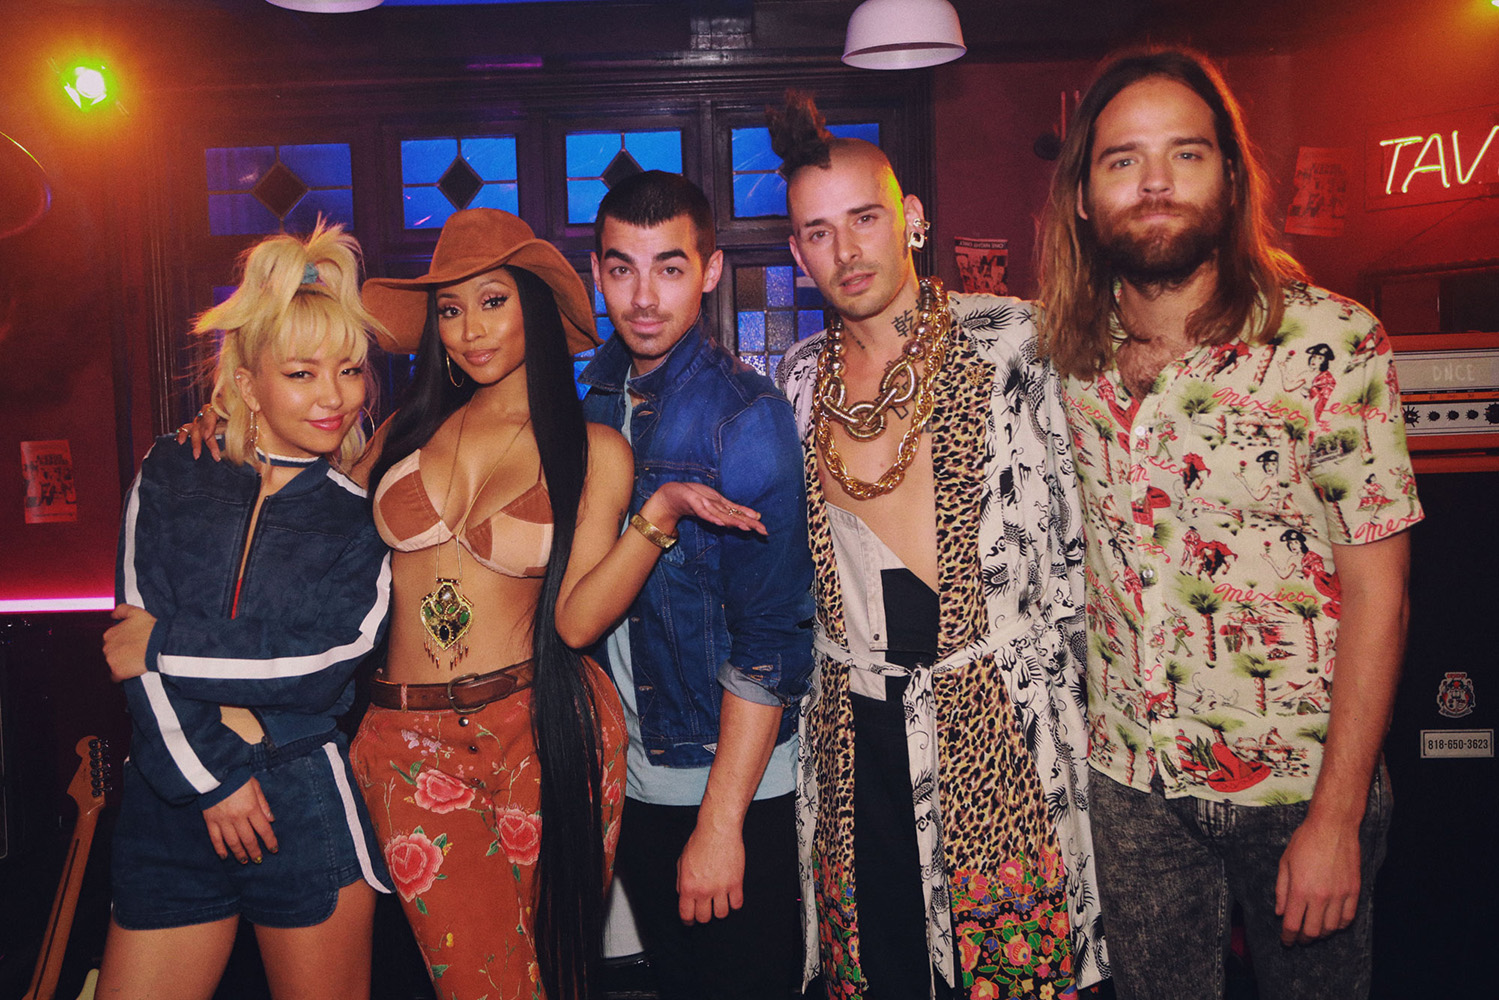 Joe Jonas with Nicki Minaj